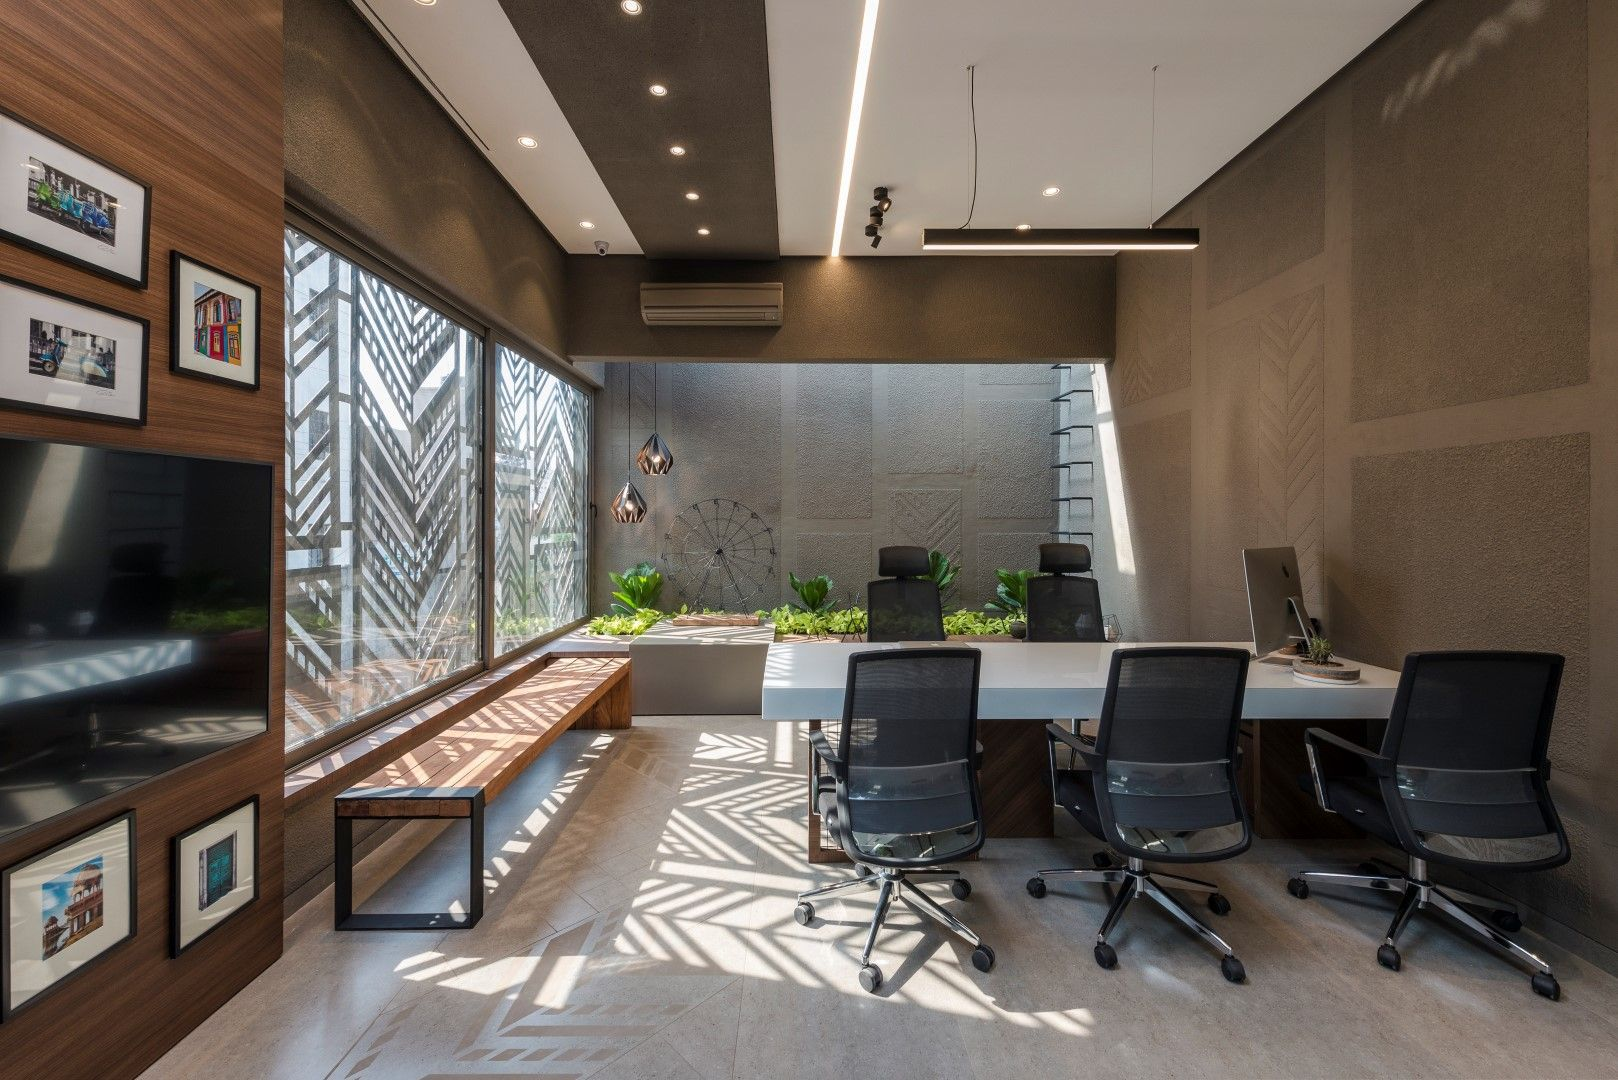 Buying Very Cheap Office Furniture Correctly In 2020 Architect